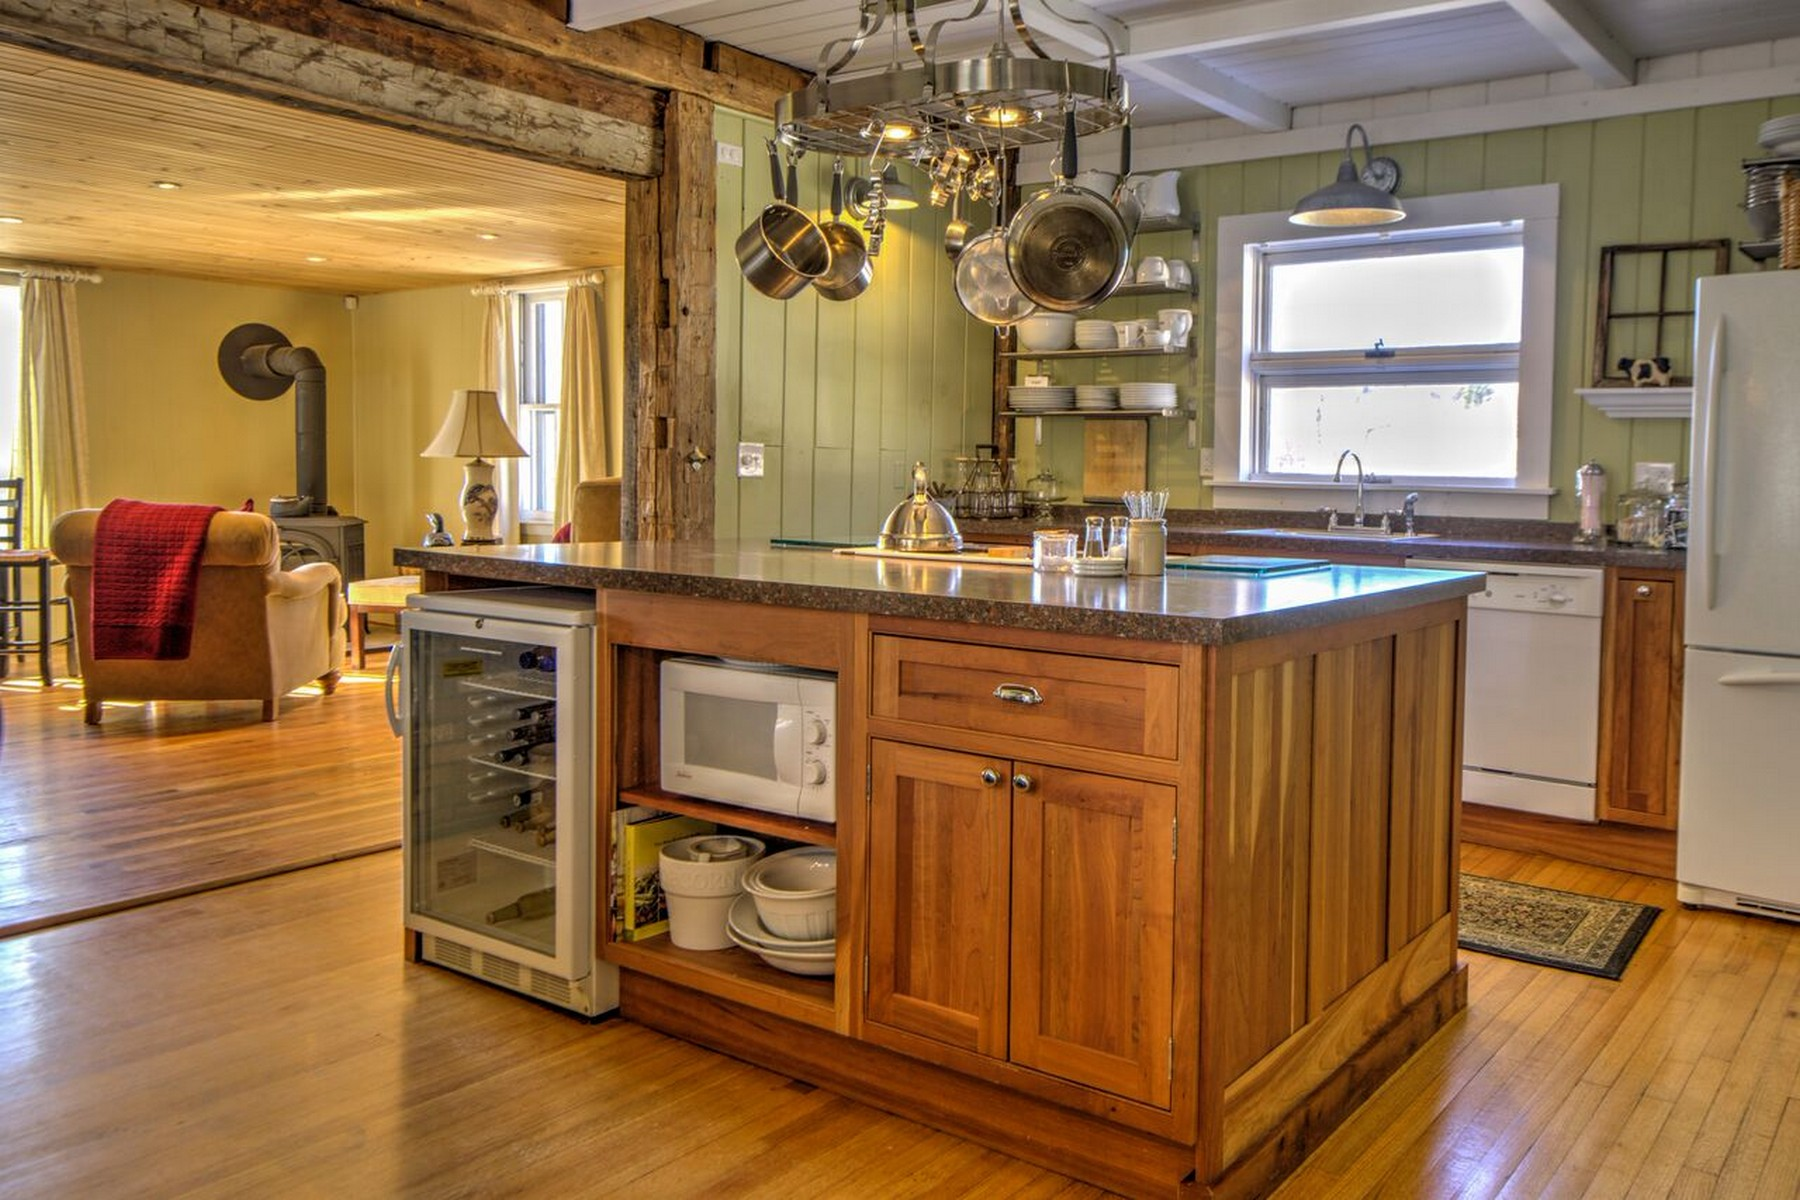 Single Family Home for Sale at Charming Renovated Farmhouse 149 Dix Ln Whitingham, Vermont 05361 United States